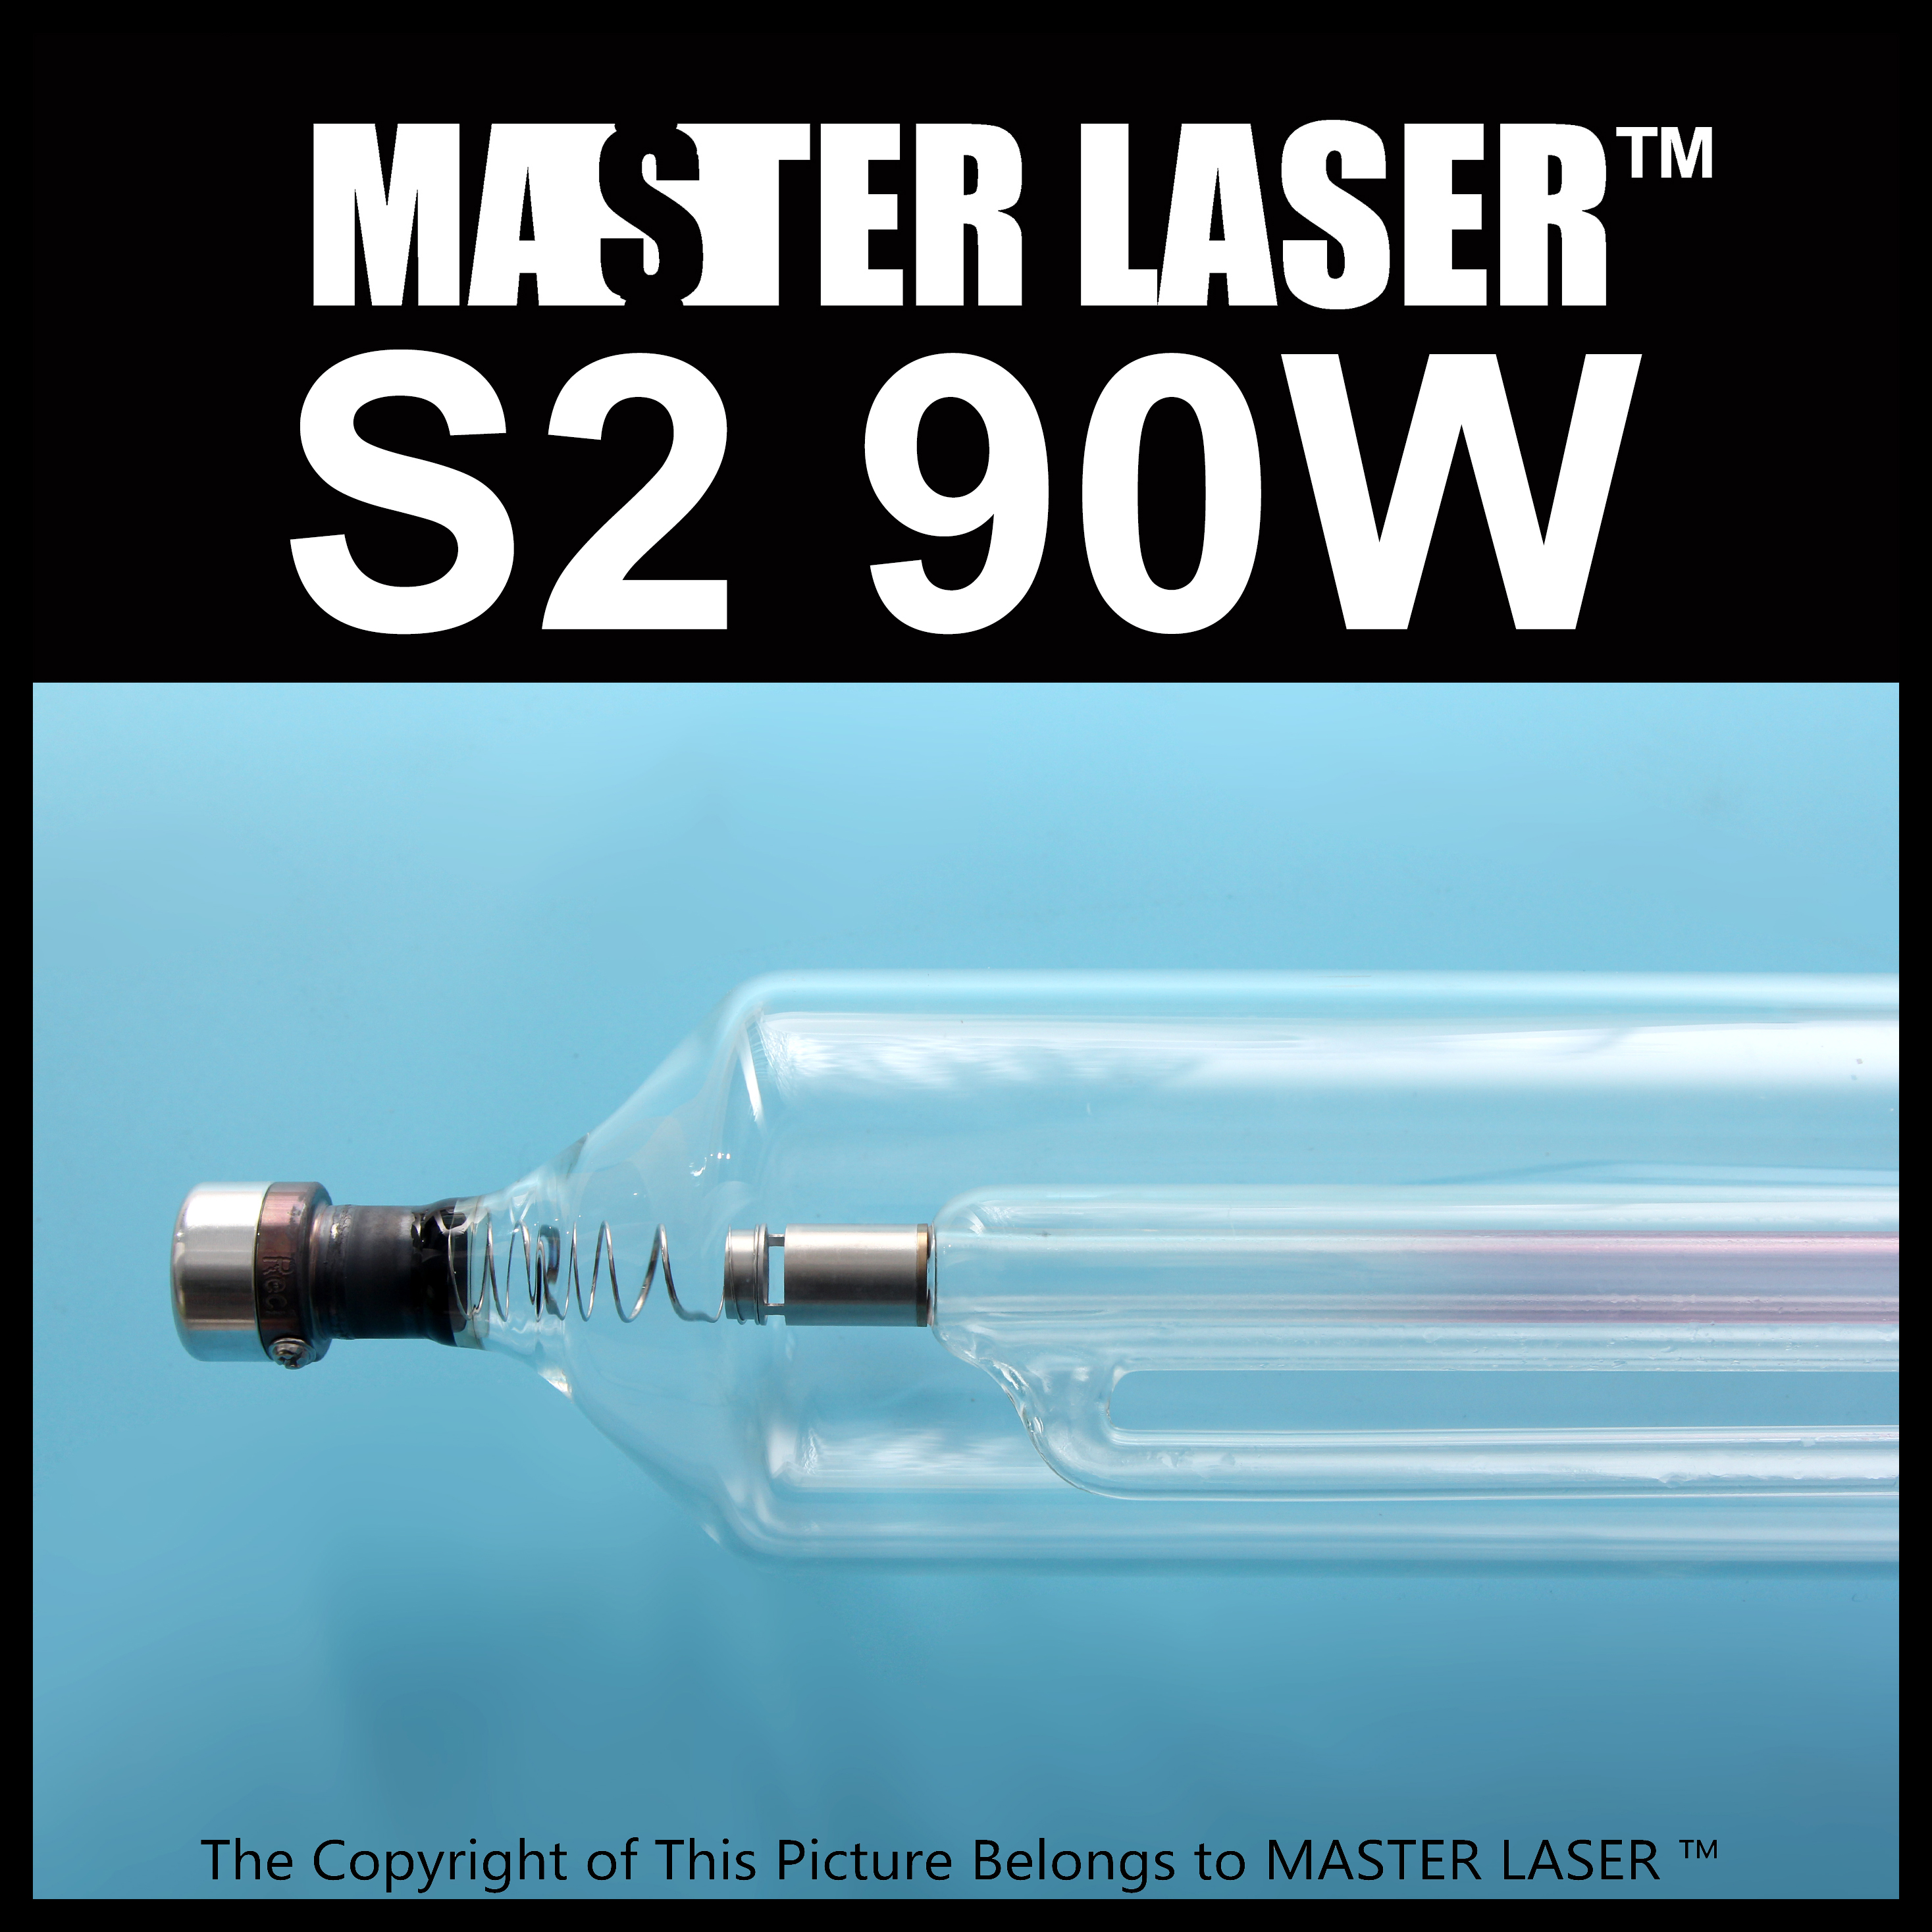 reci Glass Laser Tube  S2 90w Peak Power 110W for Flatbed Cutter